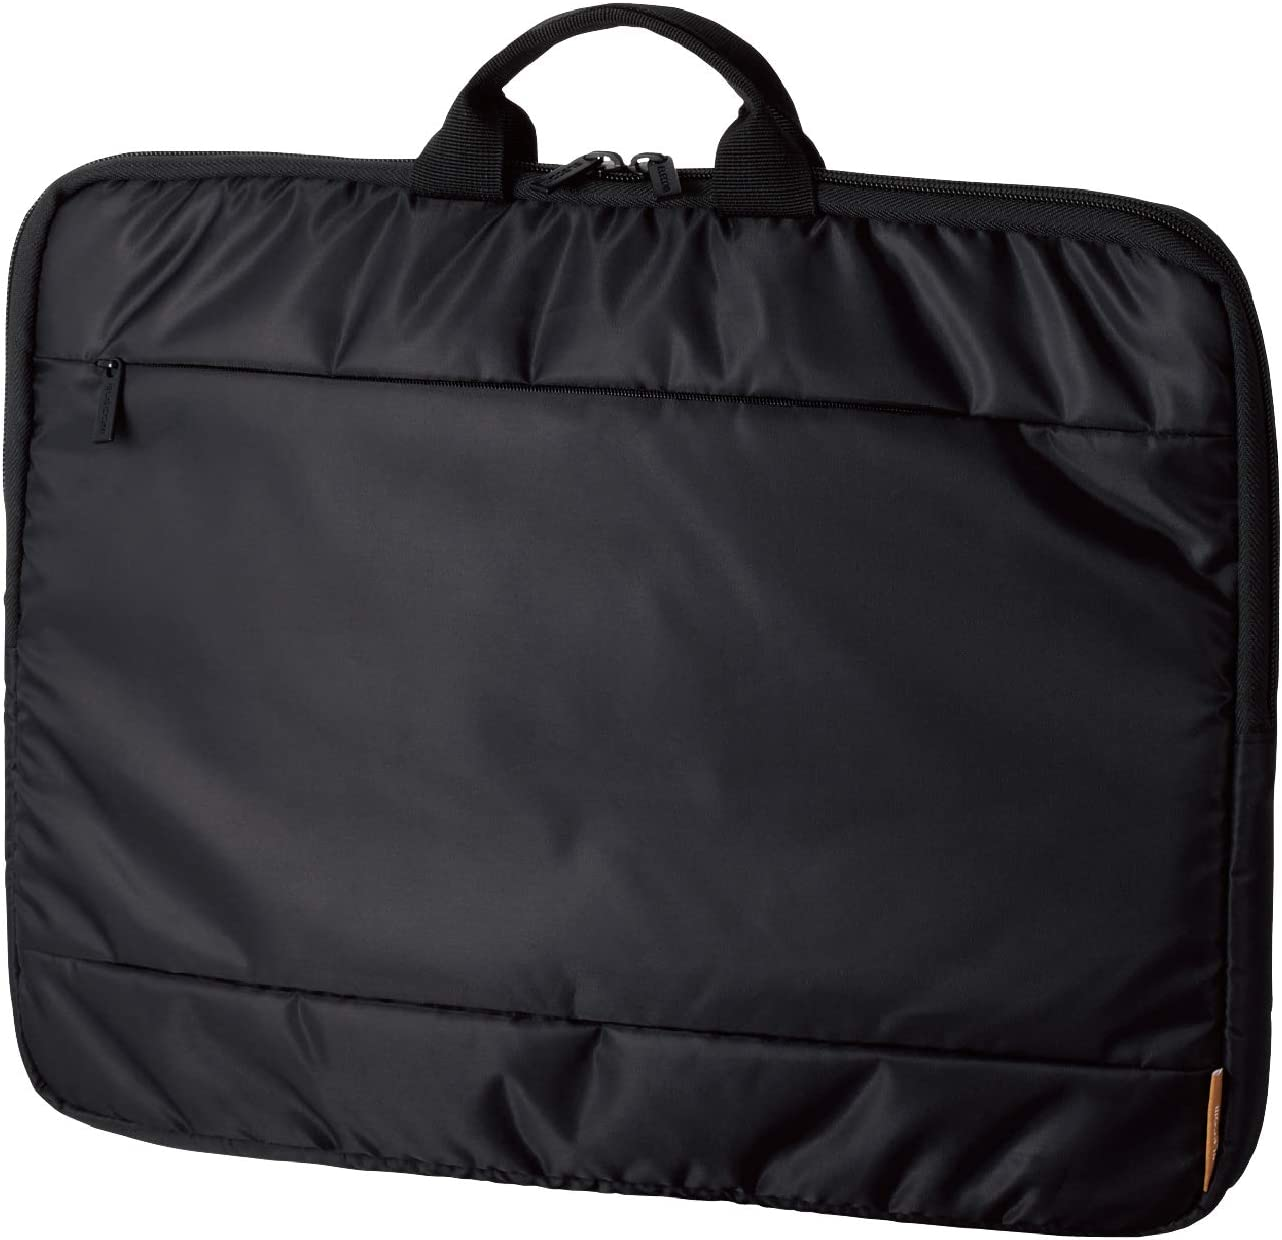 ELECOM-Japan Brand-Laptop /& Notebook PC Sleeve Inner Bag 15.6inches Size with Handle//Mount Front Pocket//Black//BM-IBH15BK